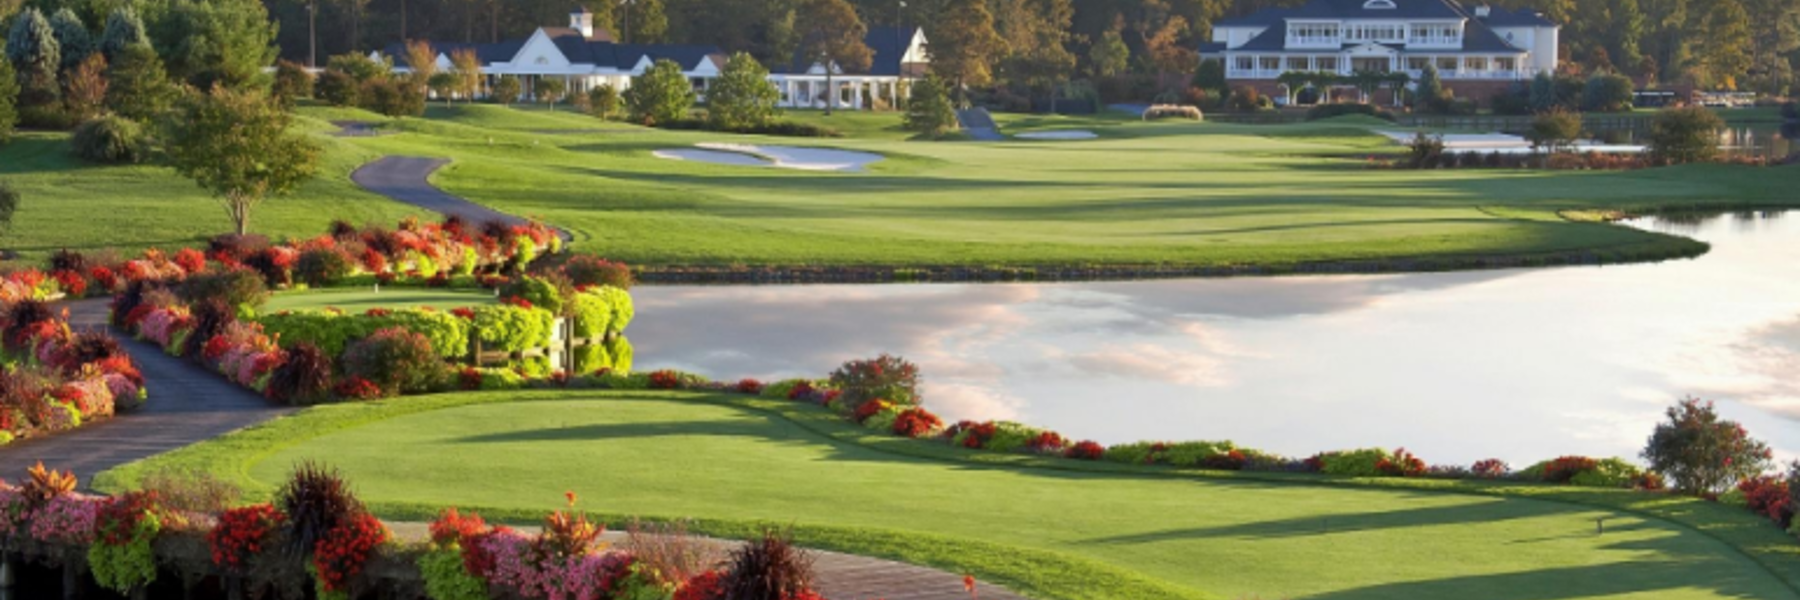 Golf Vacation Package - Baywood Greens Golf Club - (Rehoboth Beach, DE)